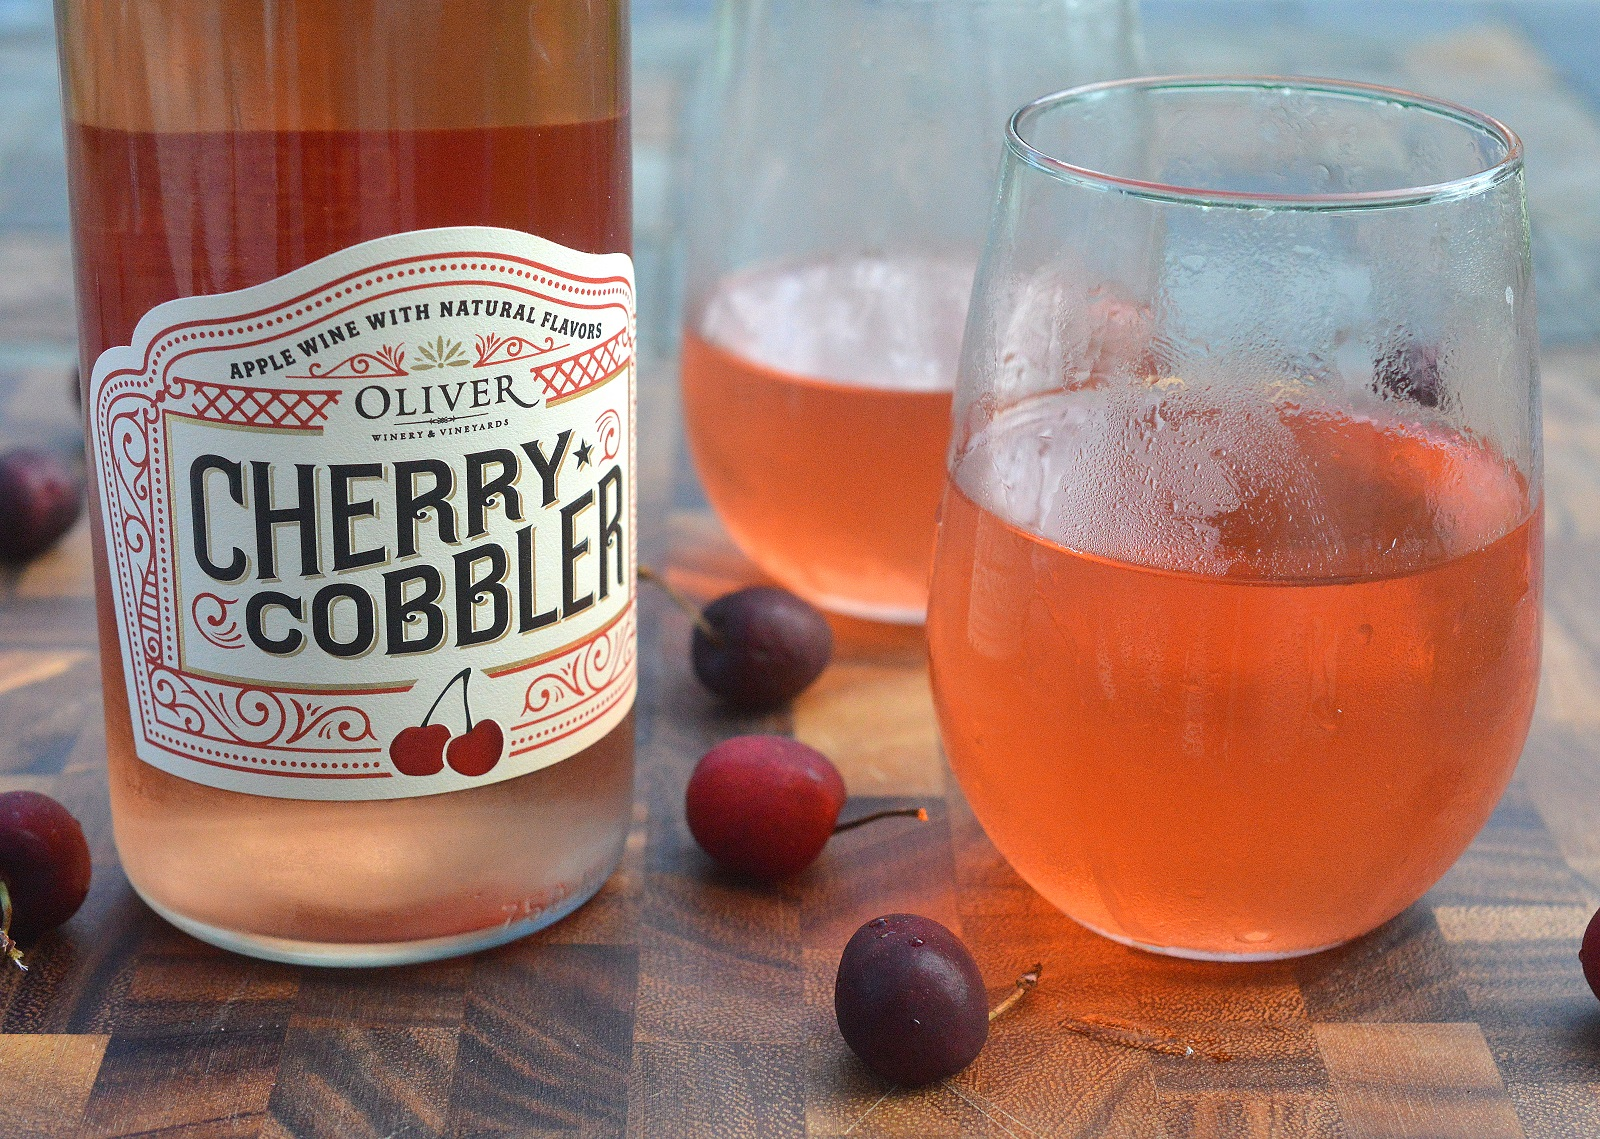 Cherry Cobbler Wine from Oliver Winery